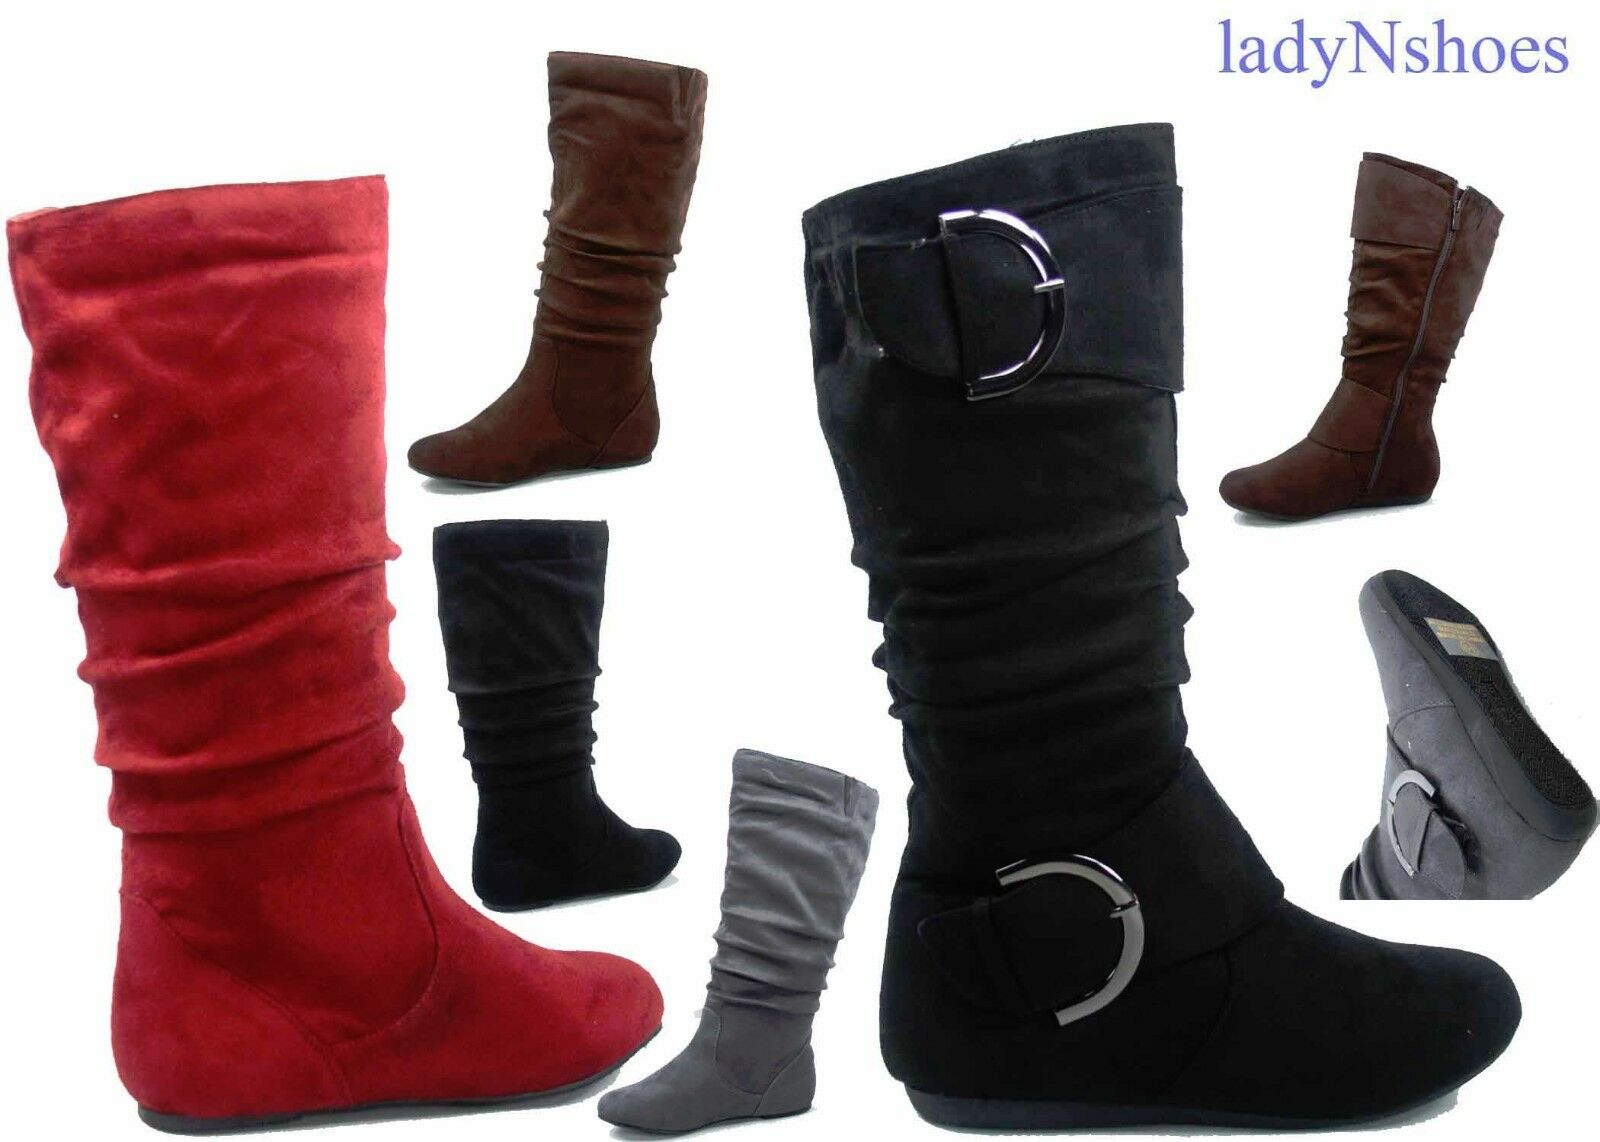 NEW Women's Comfort  Faux Suede Round Toe Flat Mid-Calf Boot